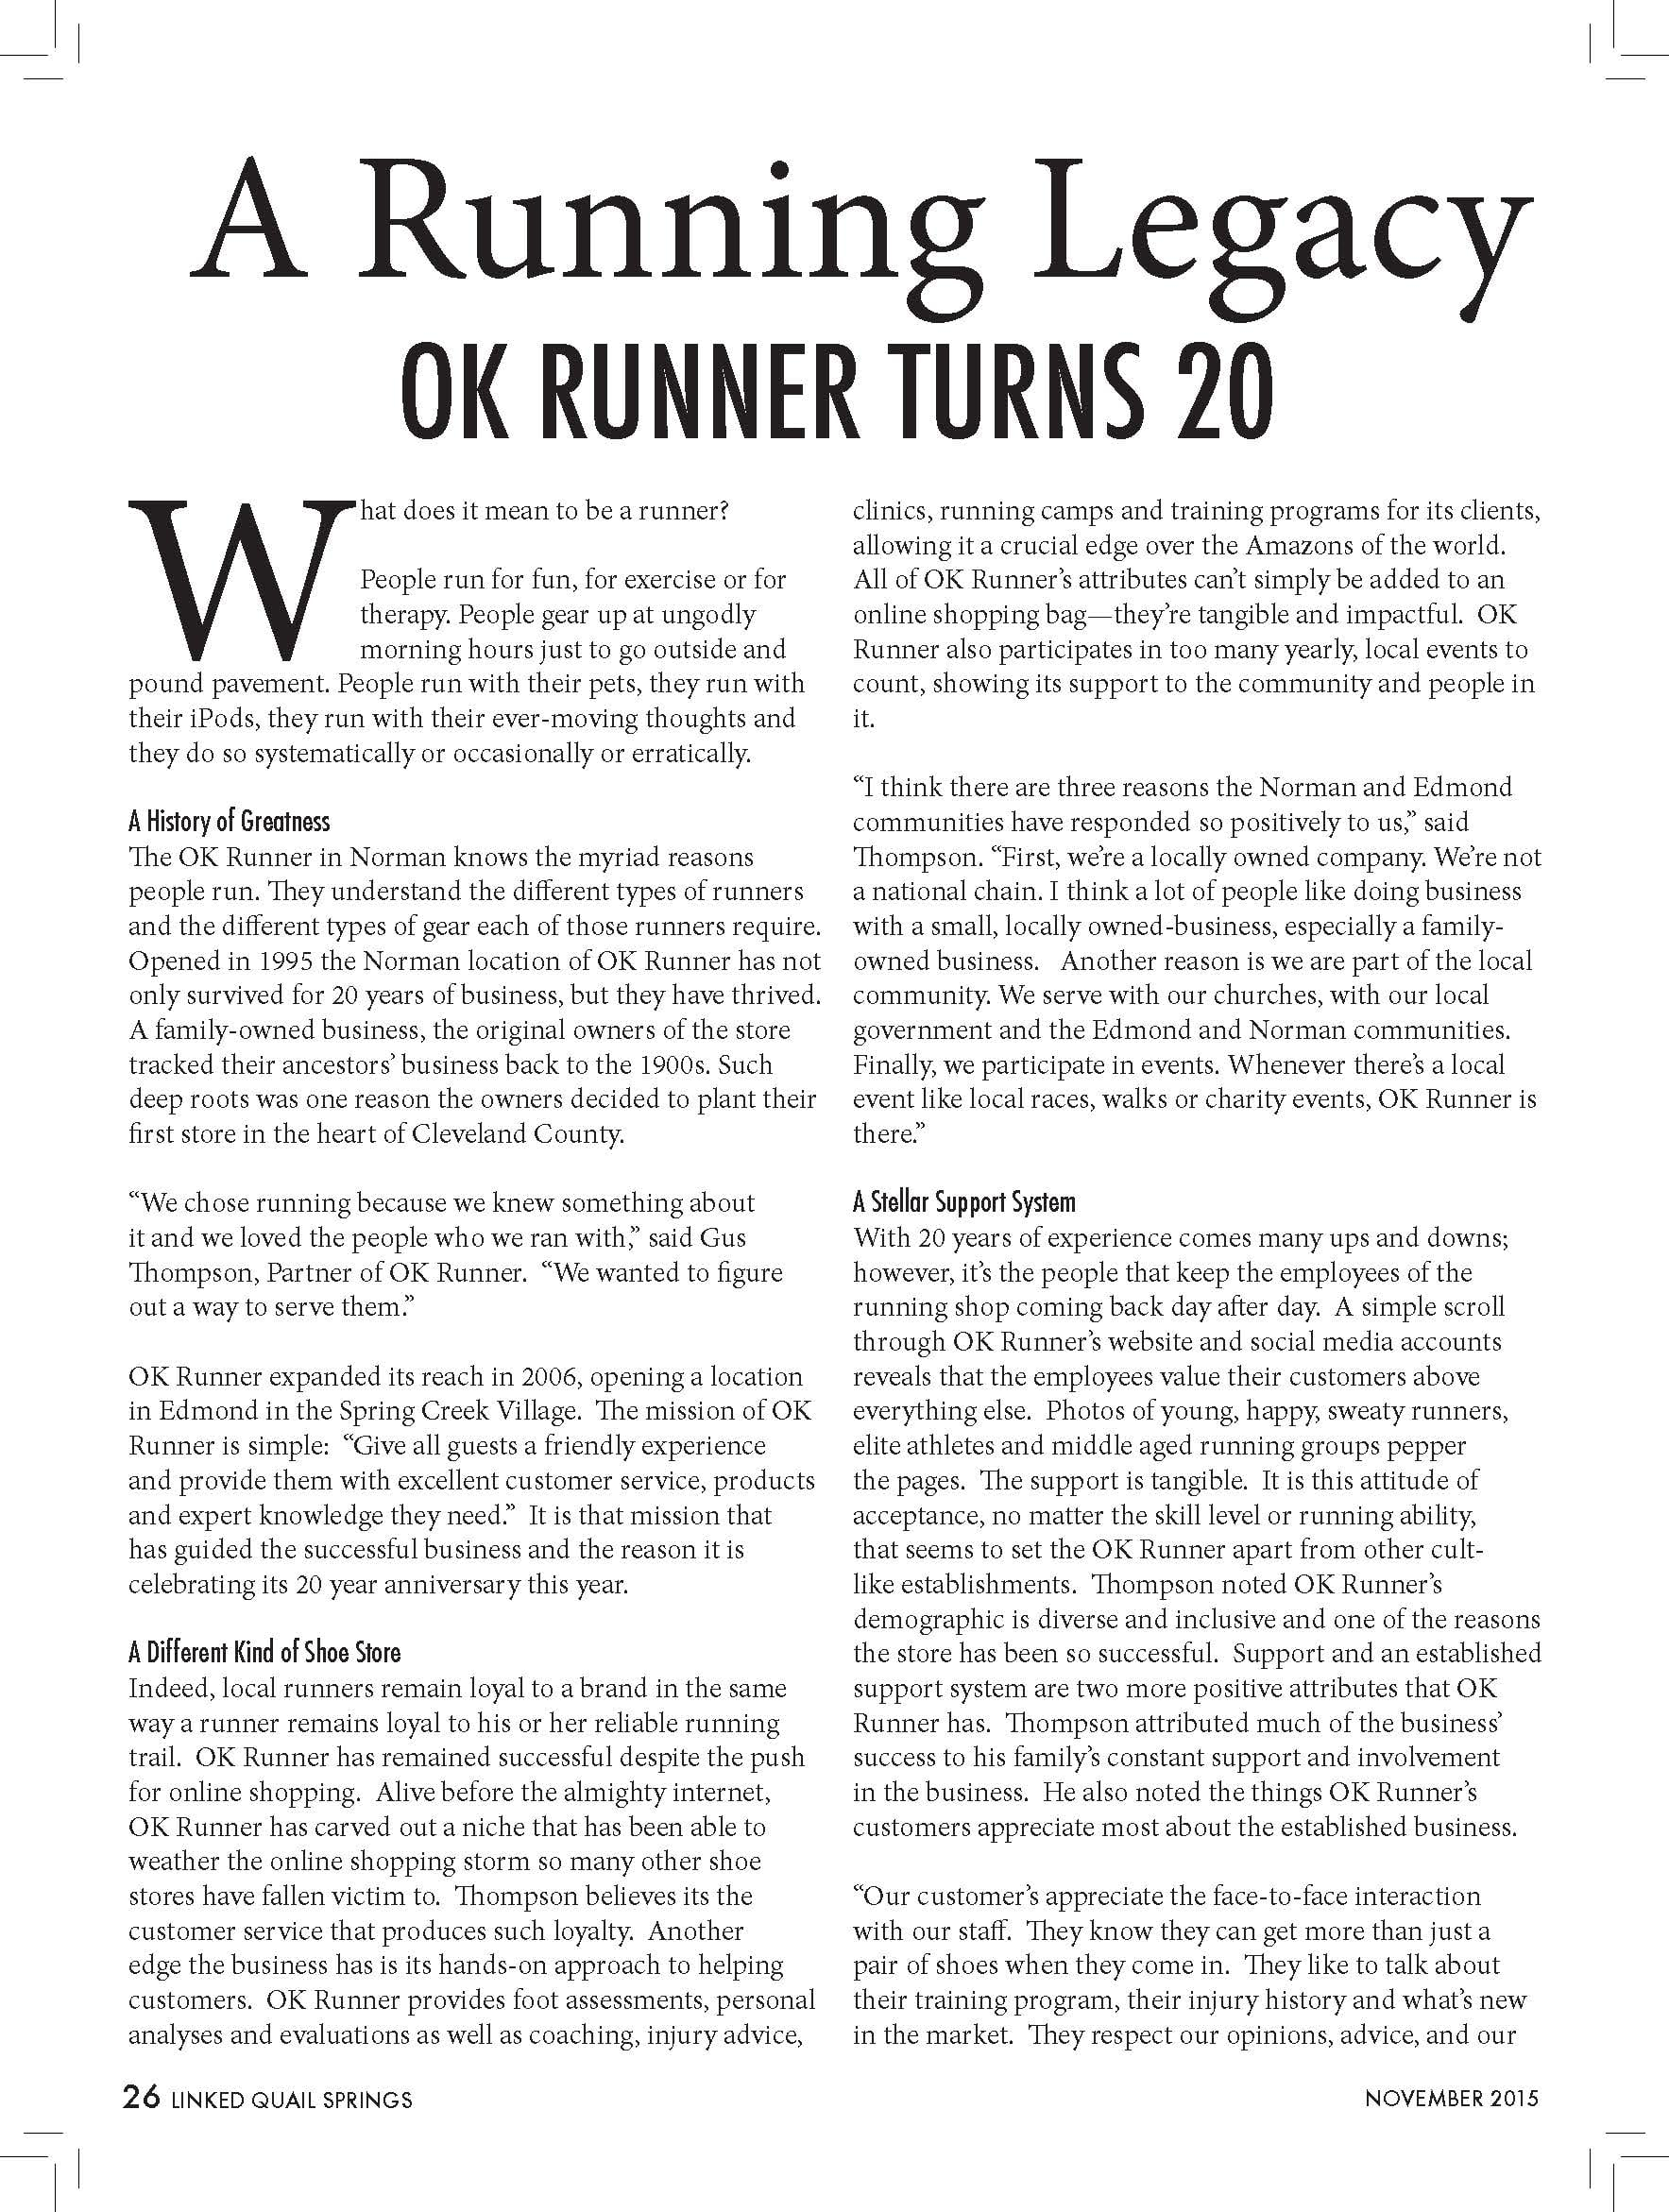 "A Running Legacy  OK RUNNER TURNS 20  What does it mean to be a runner?  People run for fun, for exercise or for  therapy. People gear up at ungodly  morning hours just to go outside and  pound pavement. People run with their pets, they run with  their iPods, they run with their ever-moving thoughts and  they do so systematically or occasionally or erratically.  A History of Greatness  The OK Runner in Norman knows the myriad reasons  people run. They understand the different types of runners  and the different types of gear each of those runners require.  Opened in 1995 the Norman location of OK Runner has not  only survived for 20 years of business, but they have thrived.  A family-owned business, the original owners of the store  tracked their ancestors' business back to the 1900s. Such  deep roots was one reason the owners decided to plant their  first store in the heart of Cleveland County.  ""We chose running because we knew something about  it and we loved the people who we ran with,"" said Gus  Thompson, Partner of OK Runner. ""We wanted to figure  out a way to serve them.""  OK Runner expanded its reach in 2006, opening a location  in Edmond in the Spring Creek Village. The mission of OK  Runner is simple: ""Give all guests a friendly experience  and provide them with excellent customer service, products  and expert knowledge they need."" It is that mission that  has guided the successful business and the reason it is  celebrating its 20 year anniversary this year.  A Different Kind of Shoe Store  Indeed, local runners remain loyal to a brand in the same  way a runner remains loyal to his or her reliable running  trail. OK Runner has remained successful despite the push  for online shopping. Alive before the almighty internet,  OK Runner has carved out a niche that has been able to  weather the online shopping storm so many other shoe  stores have fallen victim to. Thompson believes its the  customer service that produces such loyalty. Another  edge the business has is its hands-on approach to helping  customers. OK Runner provides foot assessments, personal  analyses and evaluations as well as coaching, injury advice,  clinics, running camps and training programs for its clients,  allowing it a crucial edge over the Amazons of the world.  All of OK Runner's attributes can't simply be added to an  online shopping bag—they're tangible and impactful. OK  Runner also participates in too many yearly, local events to  count, showing its support to the community and people in  it.  ""I think there are three reasons the Norman and Edmond  communities have responded so positively to us,"" said  Thompson. ""First, we're a locally owned company. We're not  a national chain. I think a lot of people like doing business  with a small, locally owned-business, especially a familyowned  business. Another reason is we are part of the local  community. We serve with our churches, with our local  government and the Edmond and Norman communities.  Finally, we participate in events. Whenever there's a local  event like local races, walks or charity events, OK Runner is  there.""  A Stellar Support System  With 20 years of experience comes many ups and downs;  however, it's the people that keep the employees of the  running shop coming back day after day. A simple scroll  through OK Runner's website and social media accounts  reveals that the employees value their customers above  everything else. Photos of young, happy, sweaty runners,  elite athletes and middle aged running groups pepper  the pages. The support is tangible. It is this attitude of  acceptance, no matter the skill level or running ability,  that seems to set the OK Runner apart from other cultlike  establishments. Thompson noted OK Runner's  demographic is diverse and inclusive and one of the reasons  the store has been so successful. Support and an established  support system are two more positive attributes that OK  Runner has. Thompson attributed much of the business'  success to his family's constant support and involvement  in the business. He also noted the things OK Runner's  customers appreciate most about the established business.  ""Our customer's appreciate the face-to-face interaction  with our staff. They know they can get more than just a  pair of shoes when they come in. They like to talk about  their training program, their injury history and what's new  in the market. They respect our opinions, advice, and our"